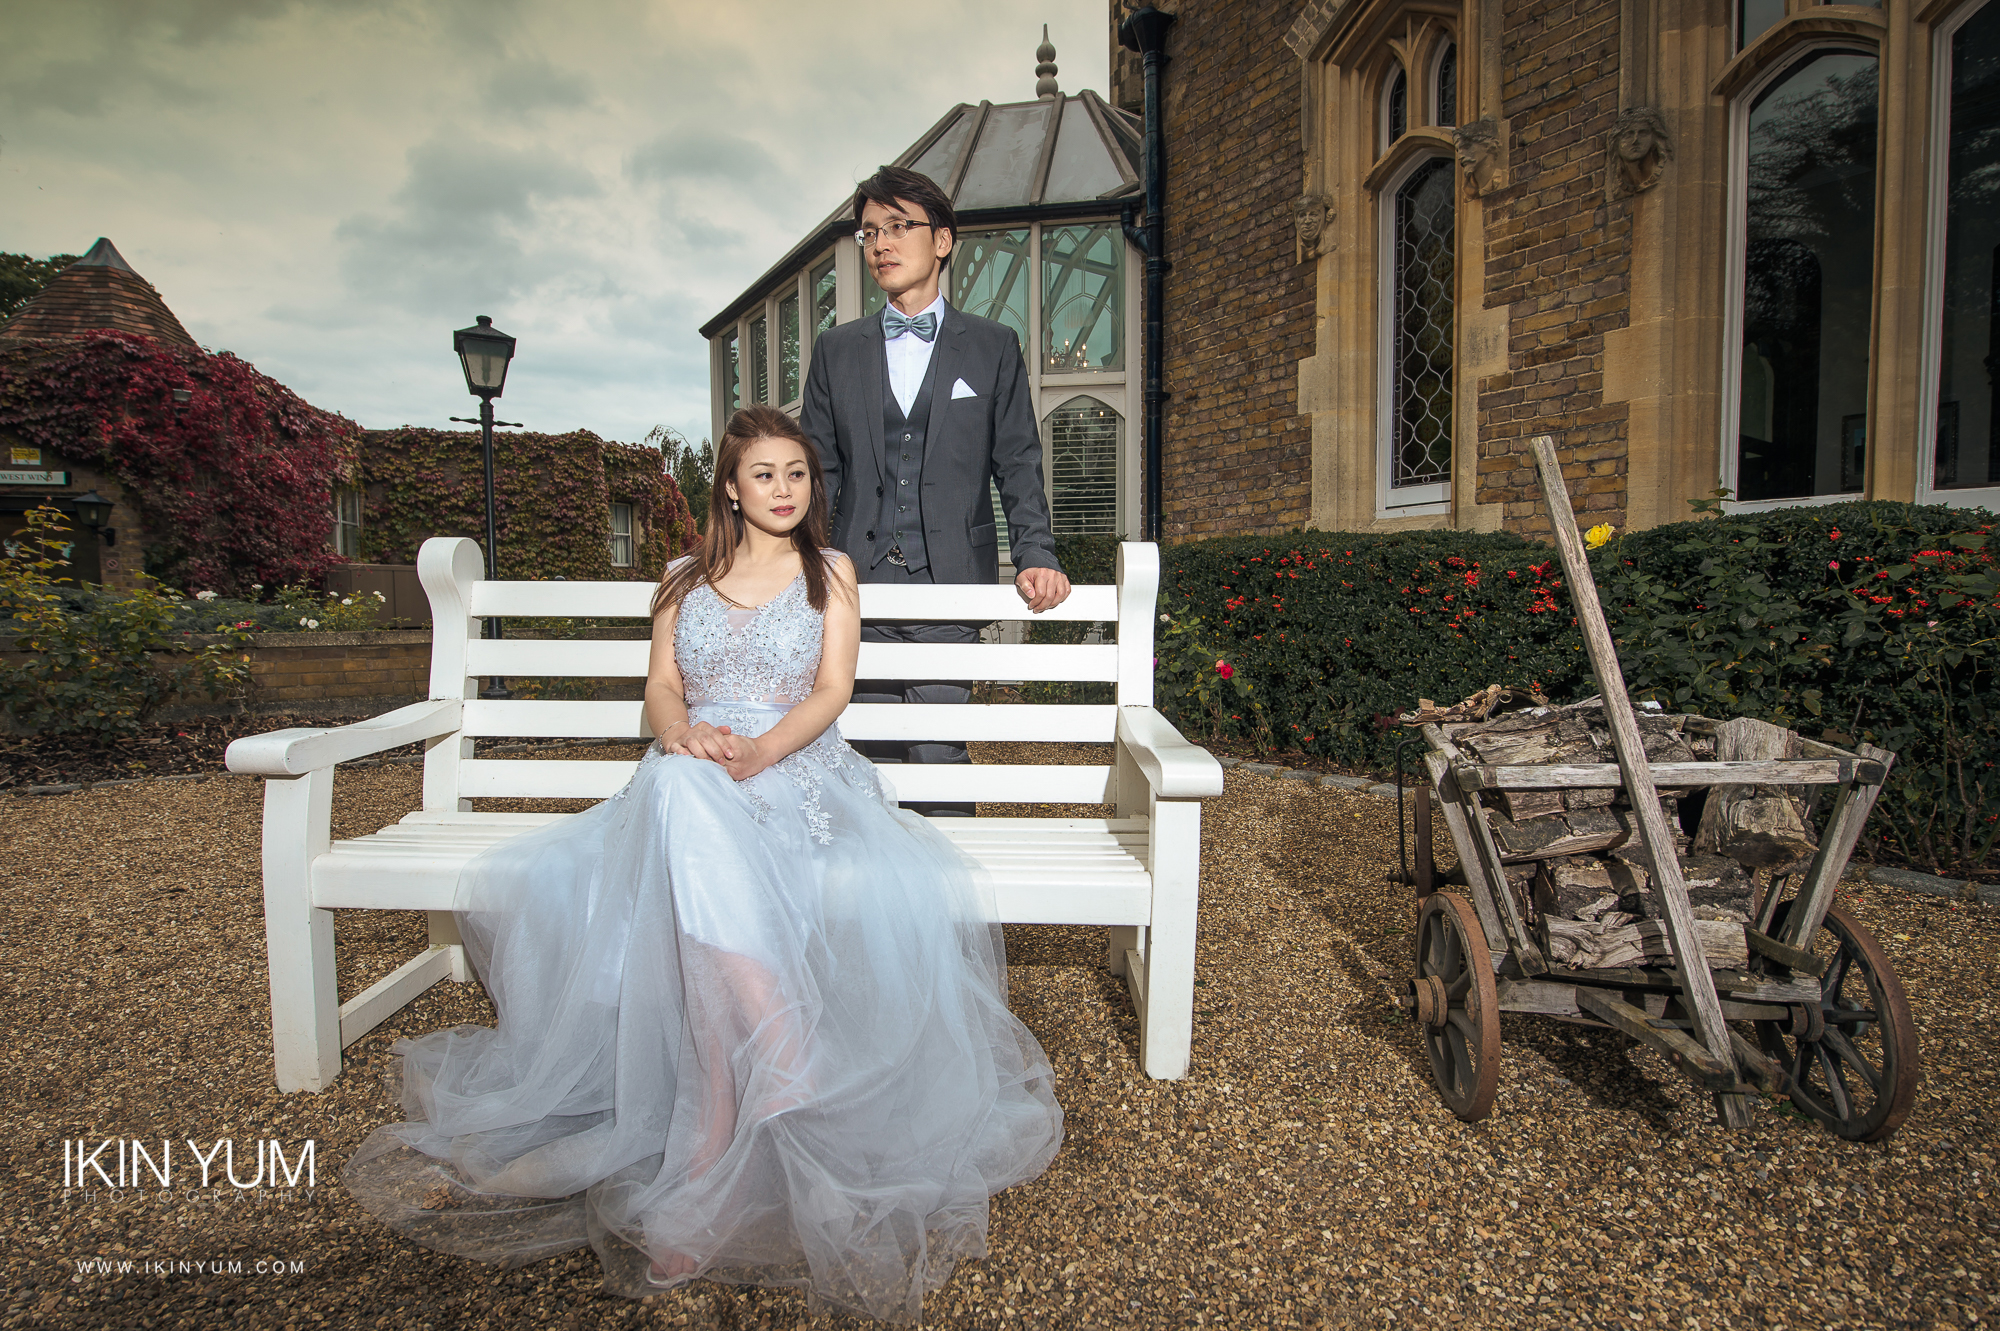 The oakley court Pre-Wedding Shoot - Ikin Yum Photography-054.jpg